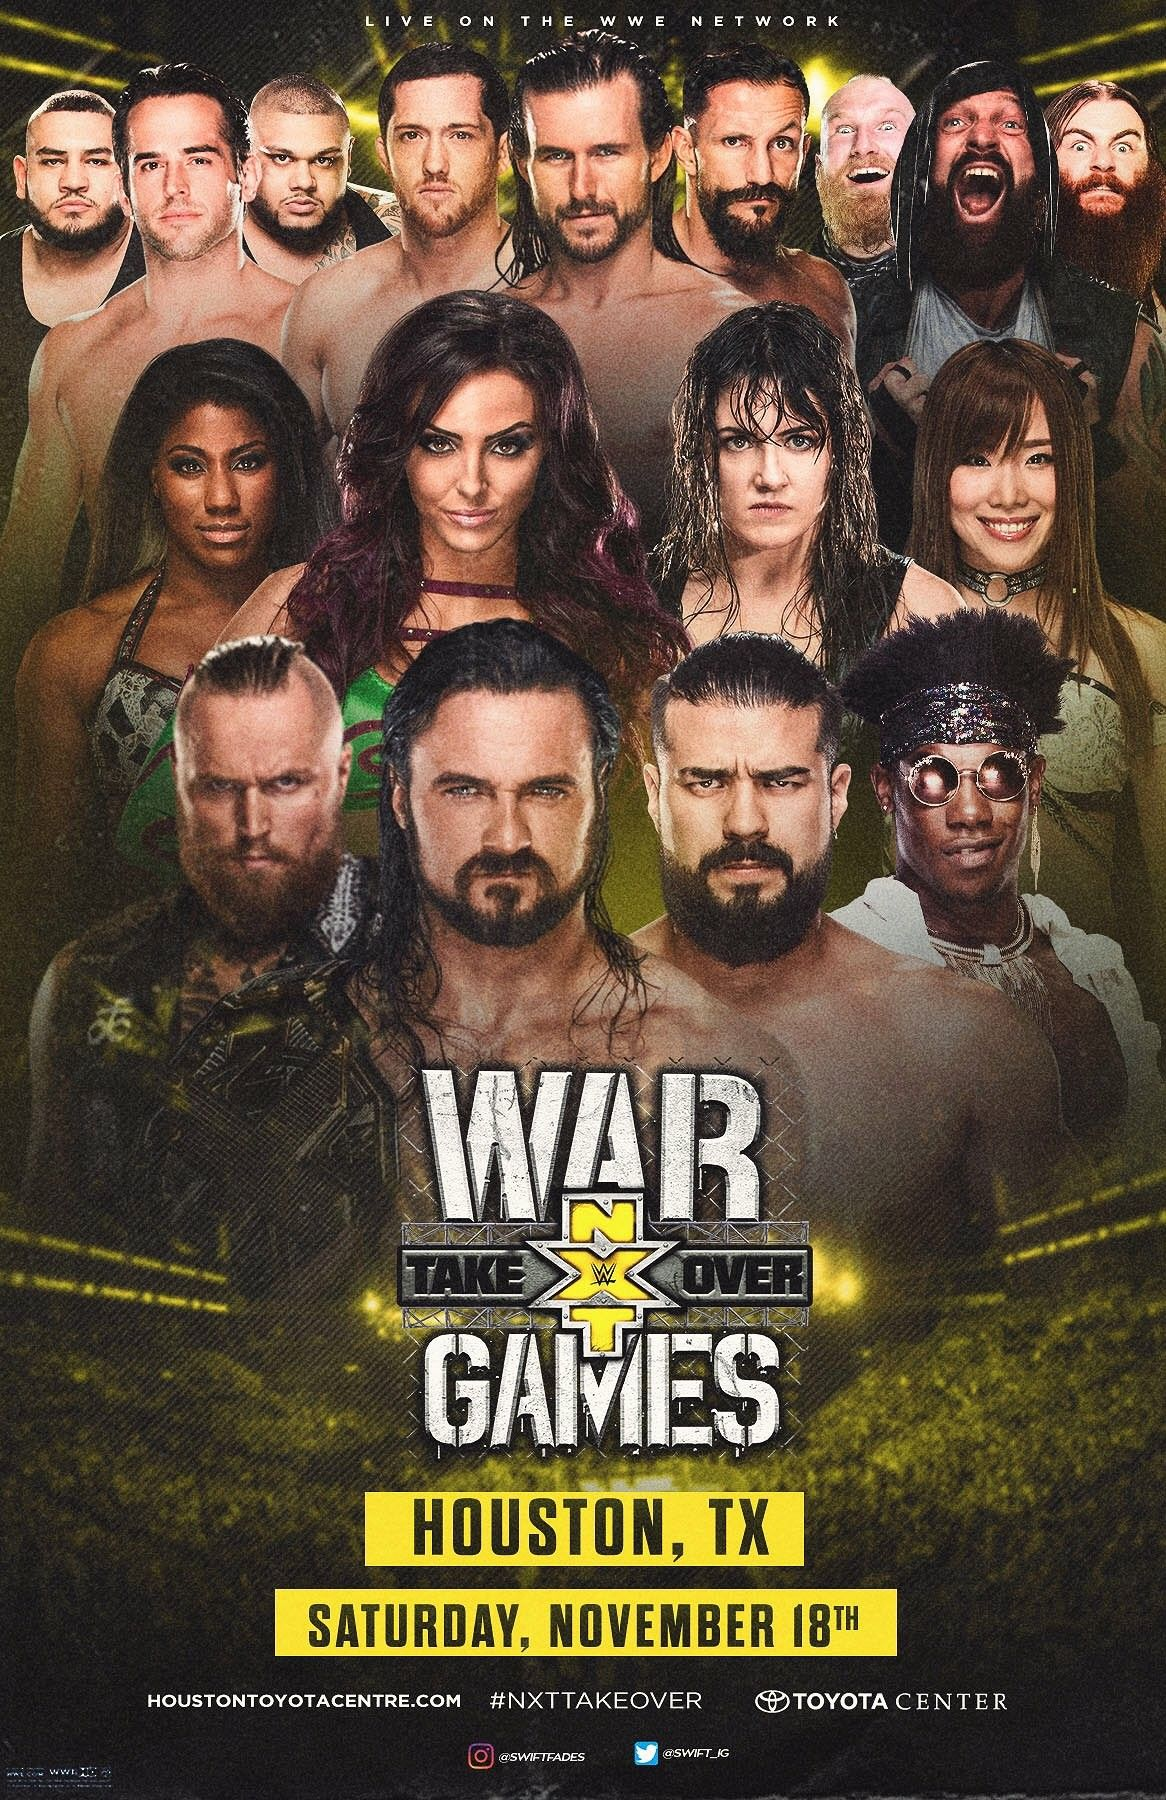 WWE NXT War Games PPV Nxt takeover, The game is over, Wwe